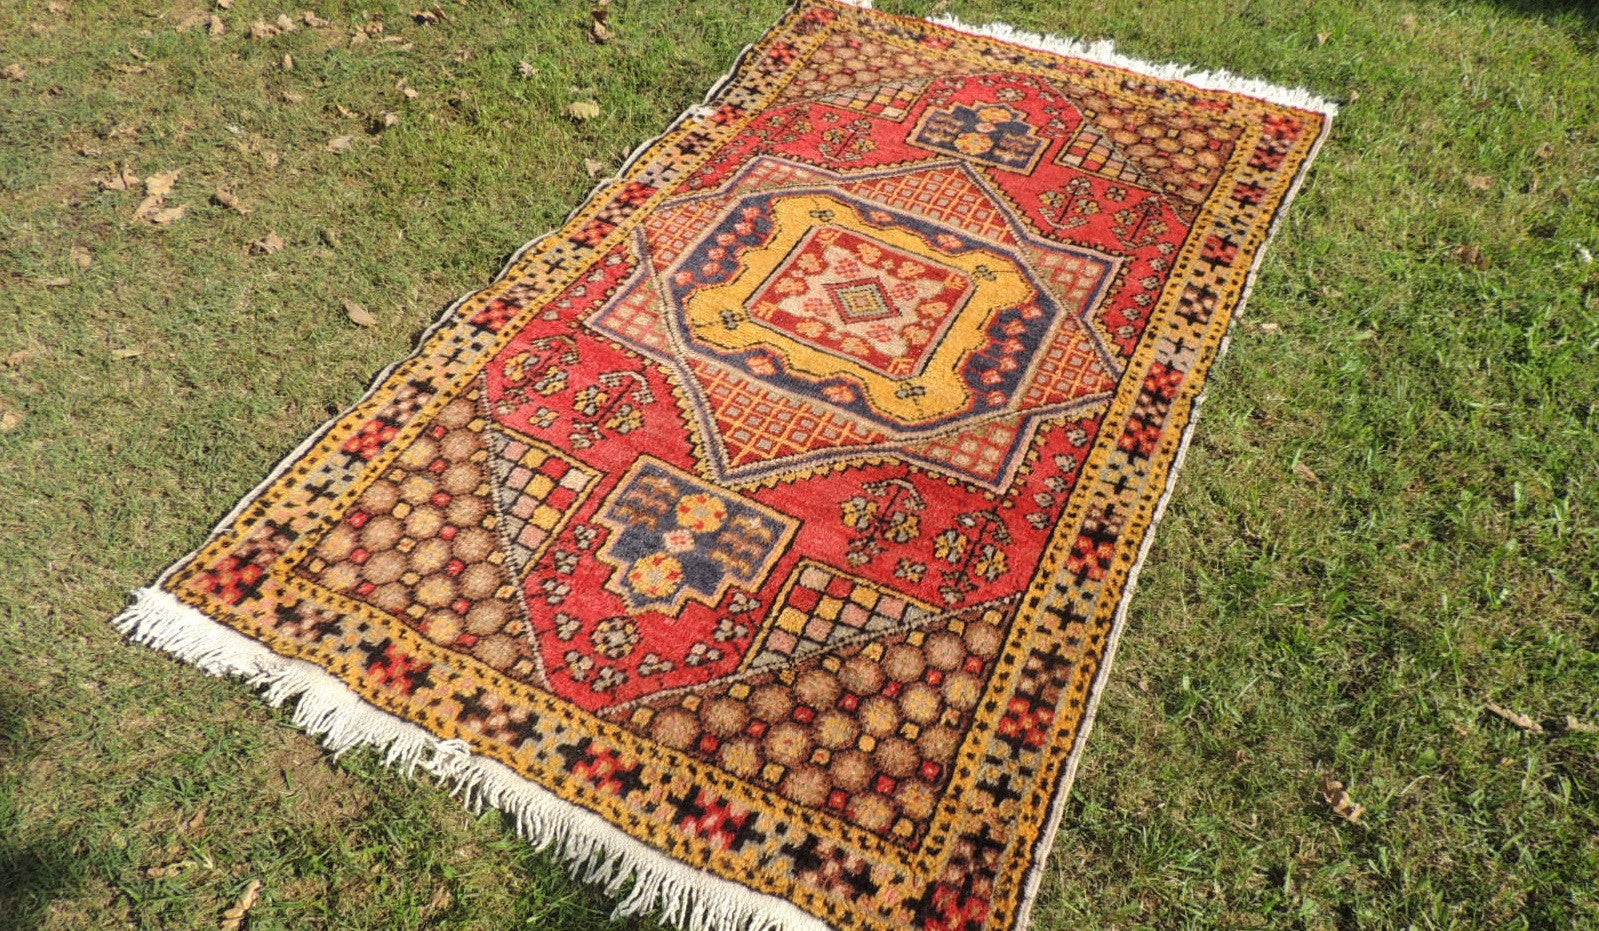 4x6 ft. Vintage Colorful Turkish area rug